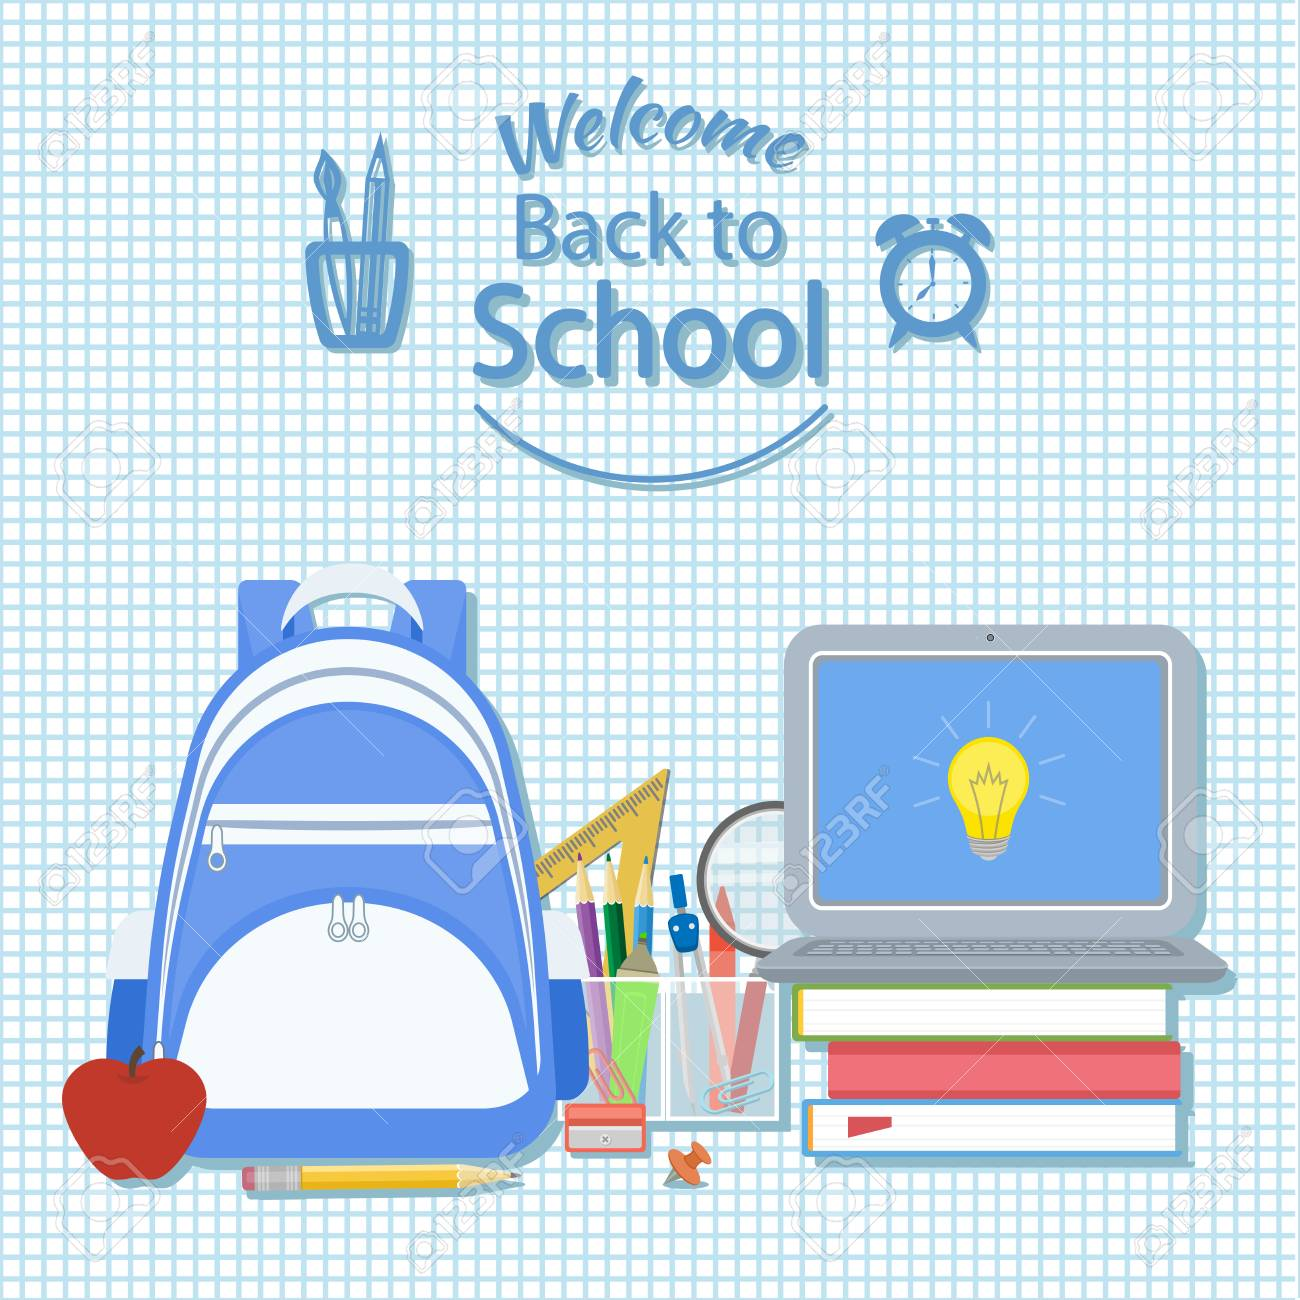 coloring book ~ 4ib44eokt Free Coloring Pages Of Books Download Clip Art  Book Incredible Back To School Welcome 83 Incredible Back To School  Coloring Pages Free. Back To School Coloring Pages. Back